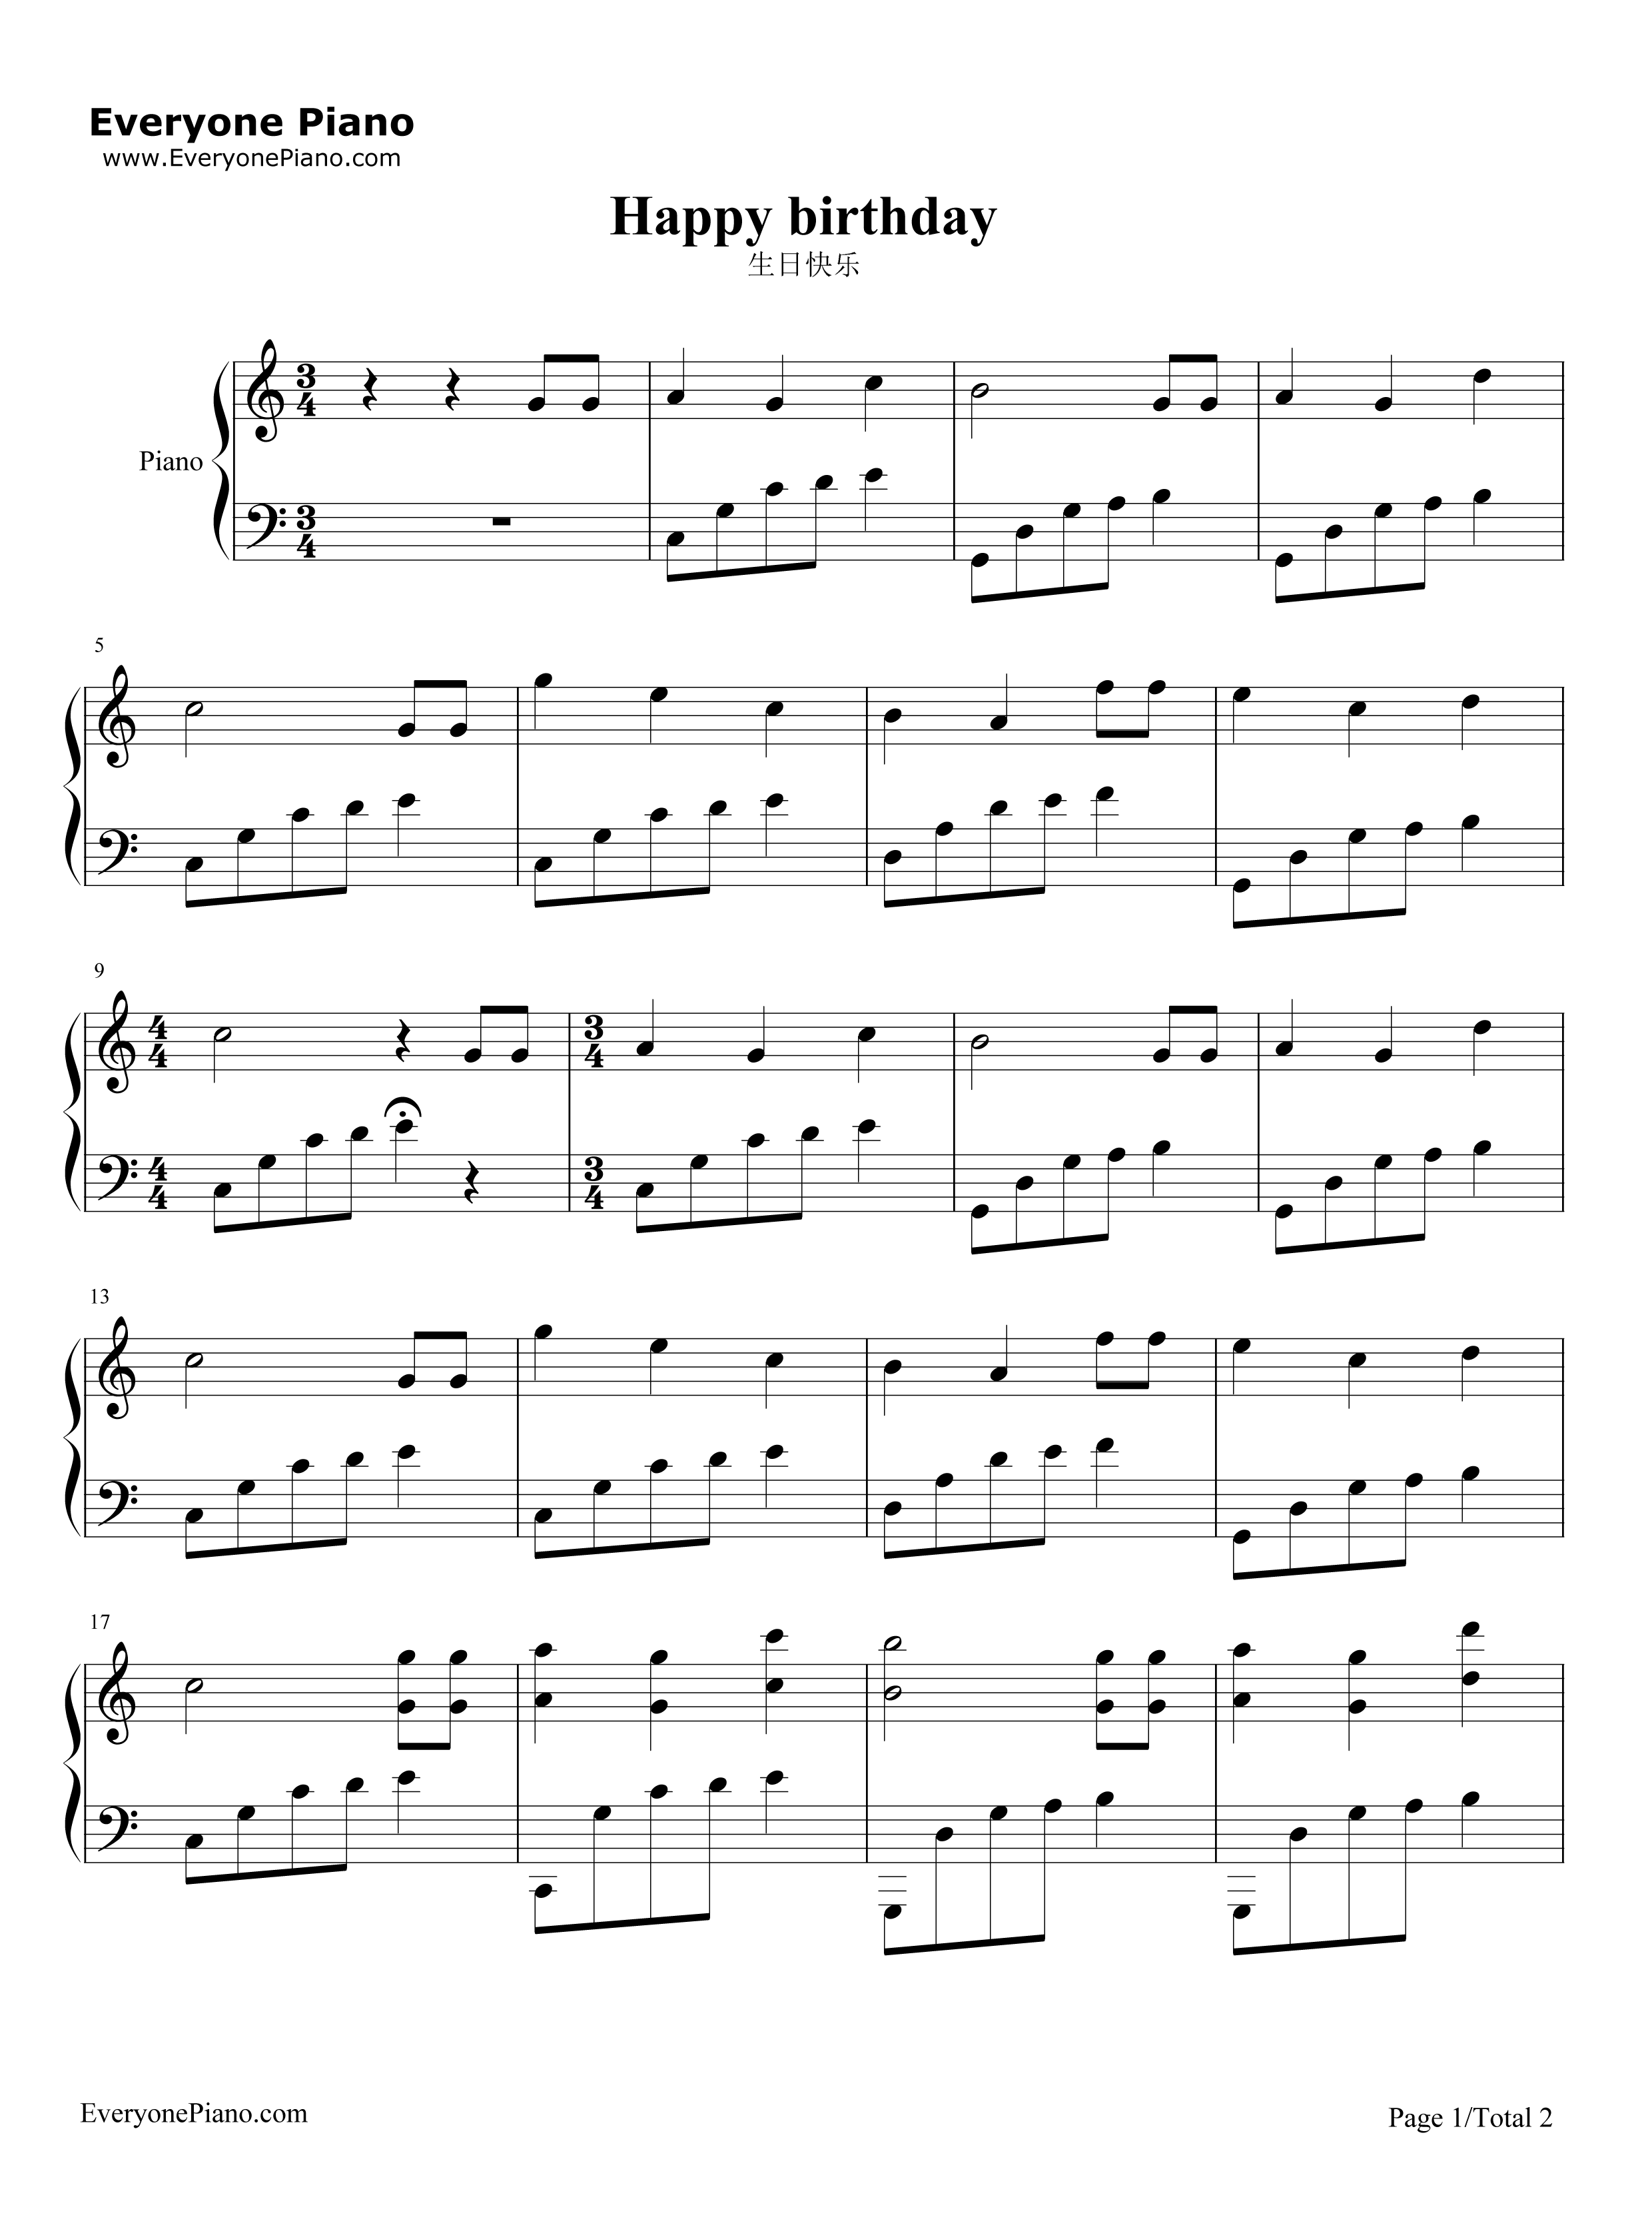 Happy birthday full version stave preview 1 free piano sheet listen now print sheet happy birthday full version stave preview 1 hexwebz Gallery